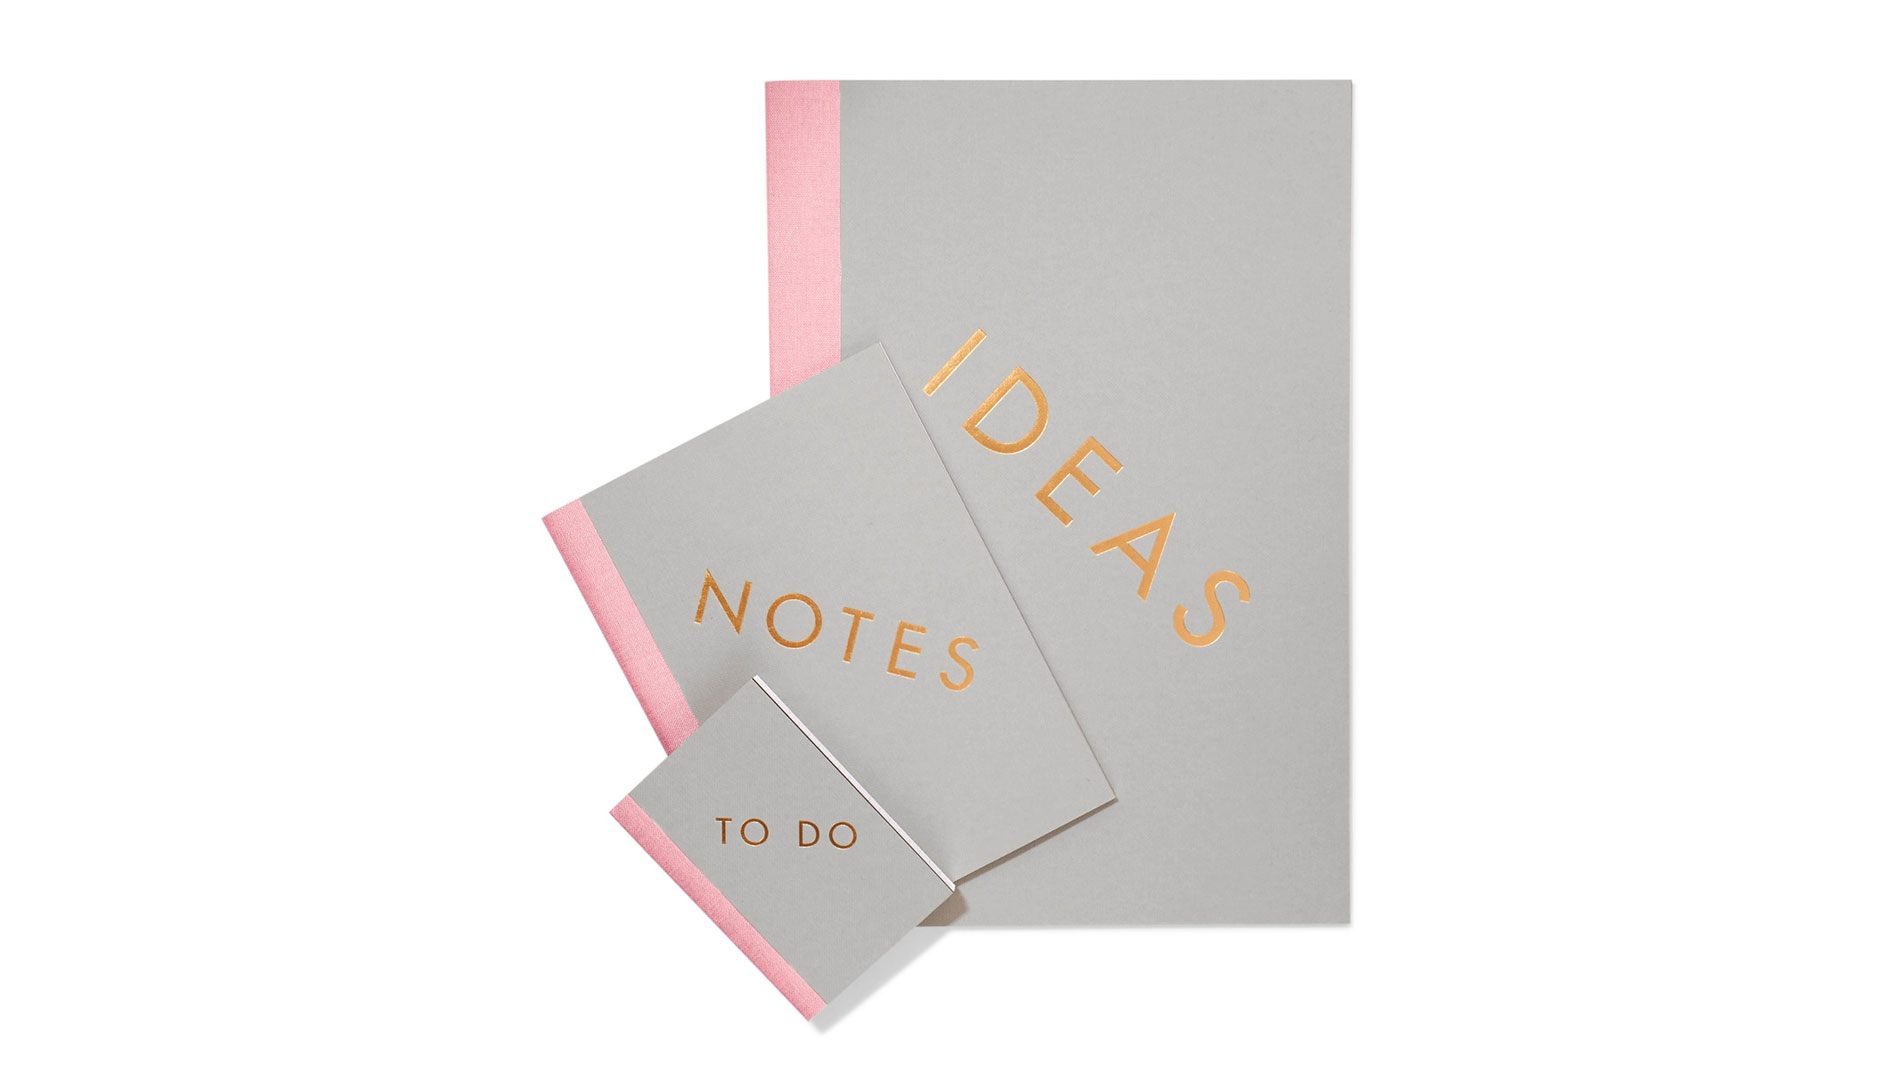 Charming notebooks: